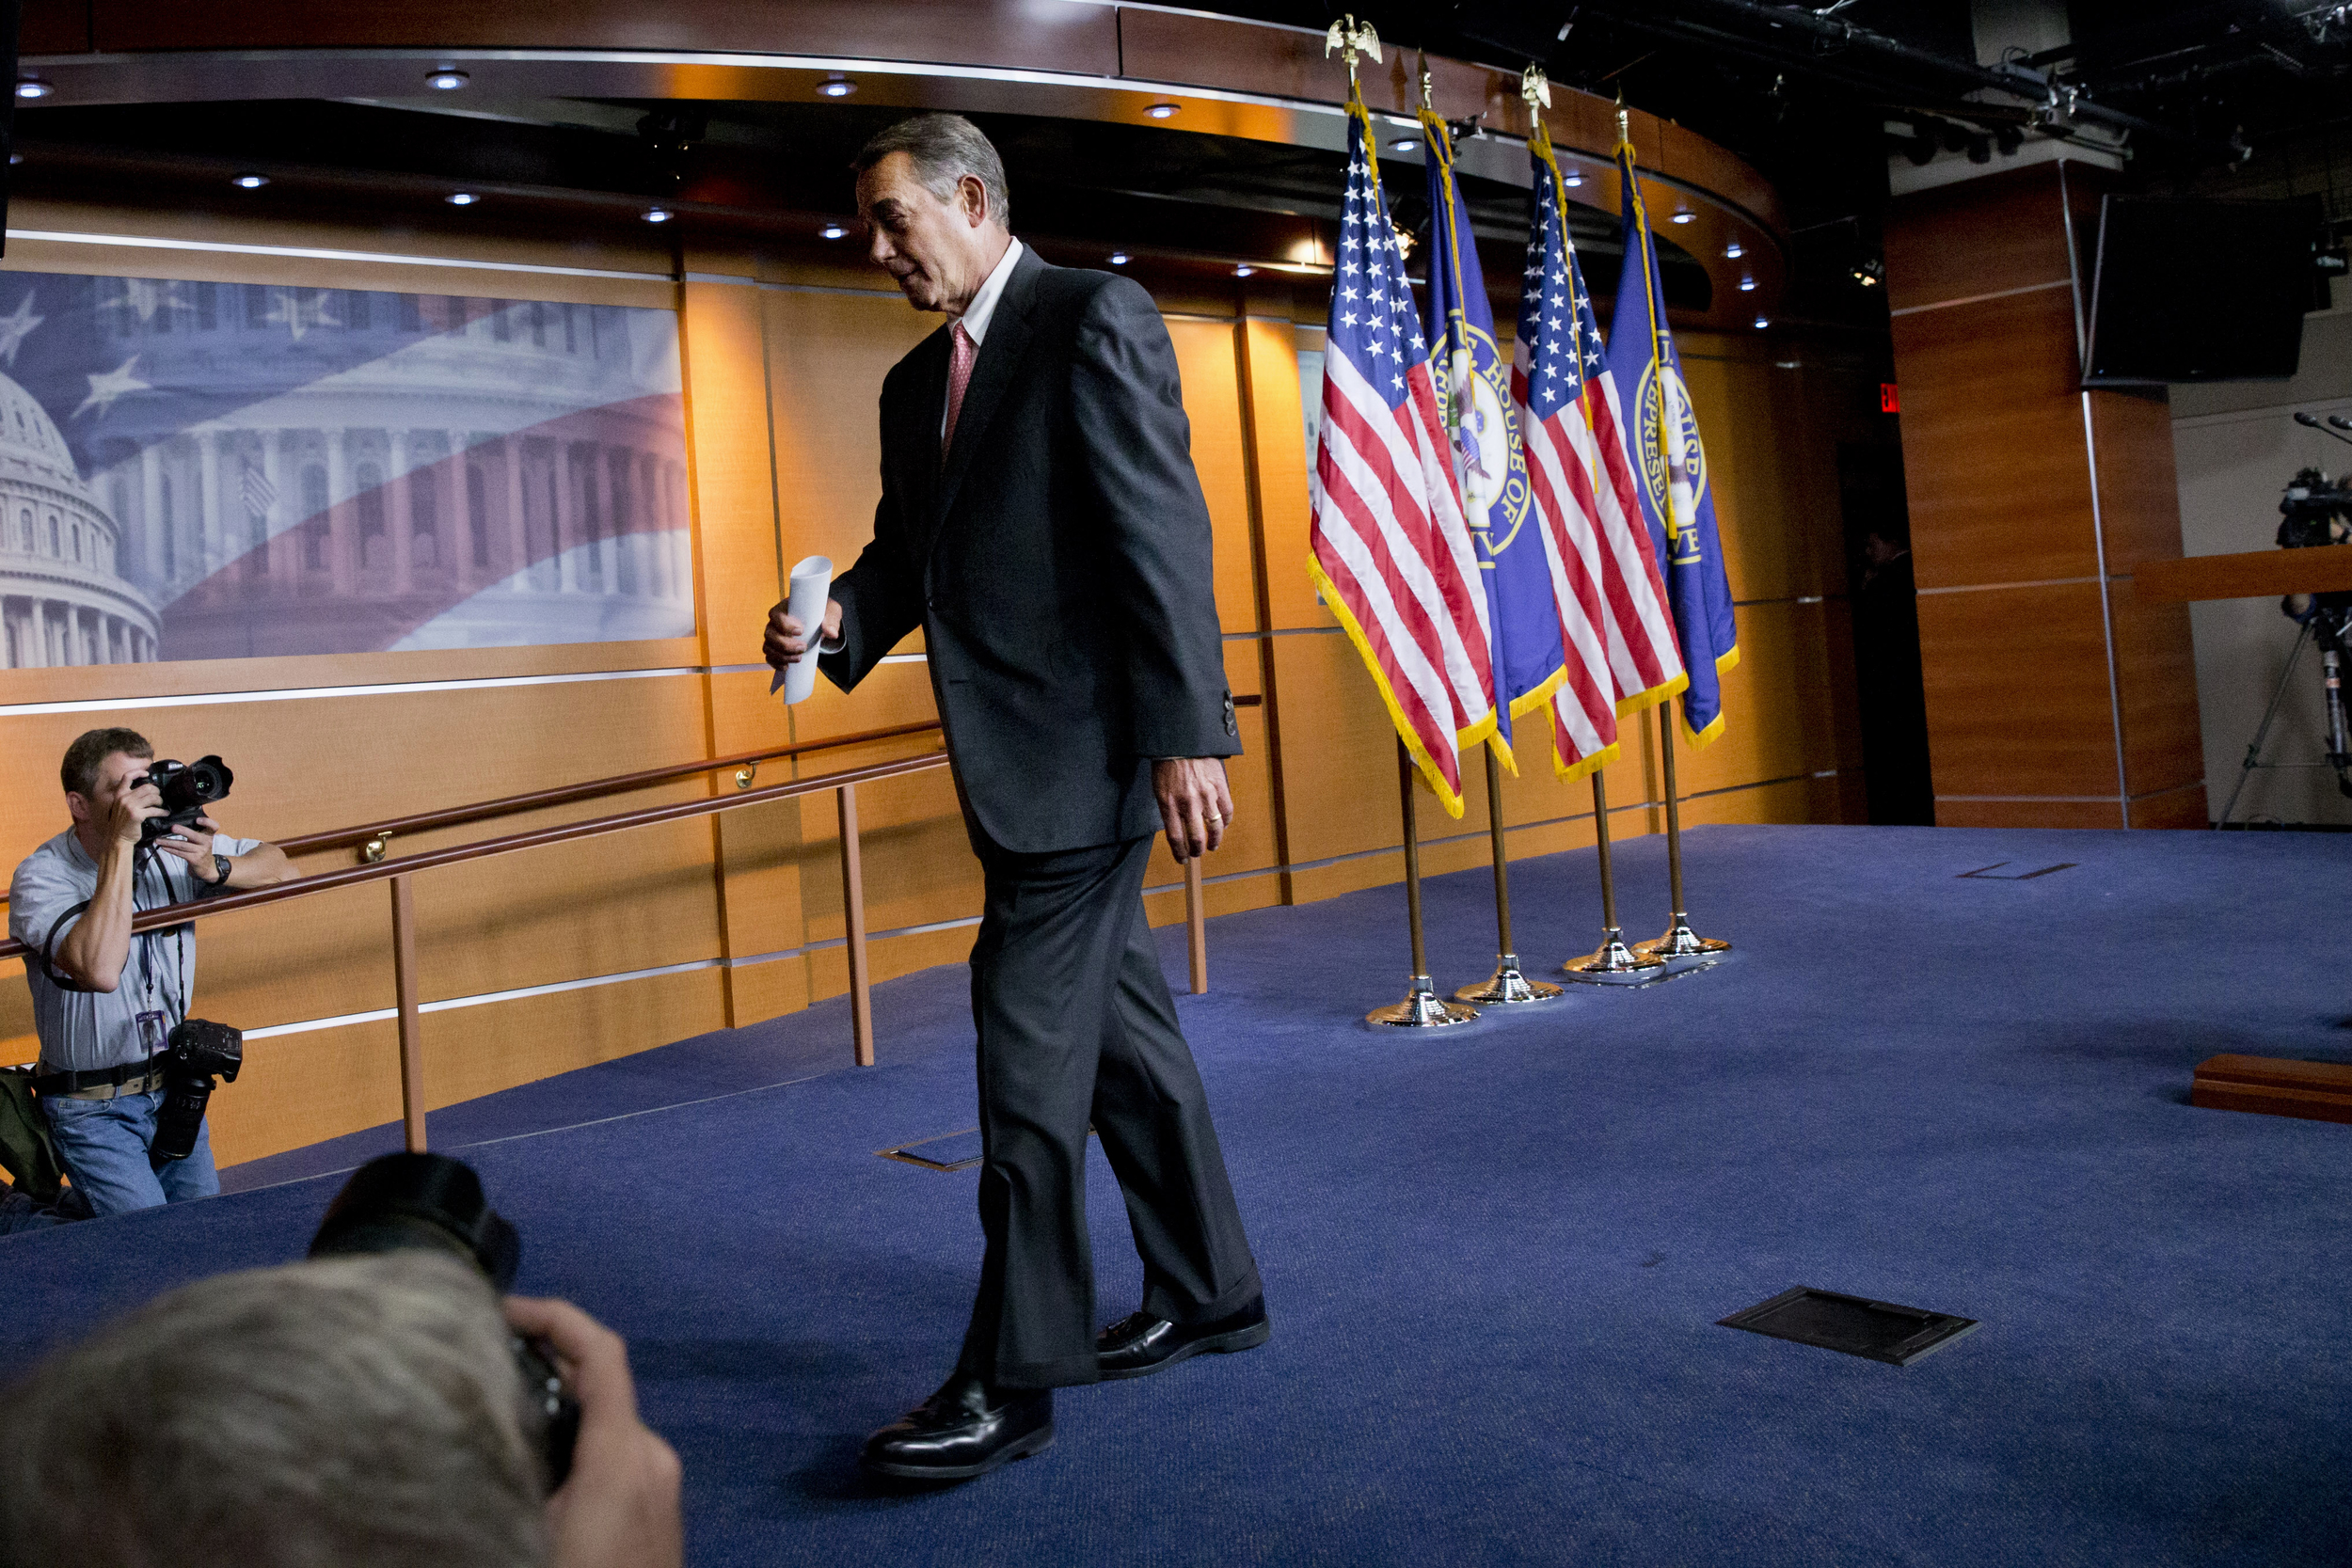 House Speaker John Boehner of Ohio leaves a news conference on Capitol Hill in Washington, Friday, Sept. 25, 2015. In a stunning move, Boehner informed fellow Republicans on Friday that he would resign from Congress at the end of October, stepping aside in the face of hardline conservative opposition that threatened an institutional crisis. (Jacquelyn Martin/AP)